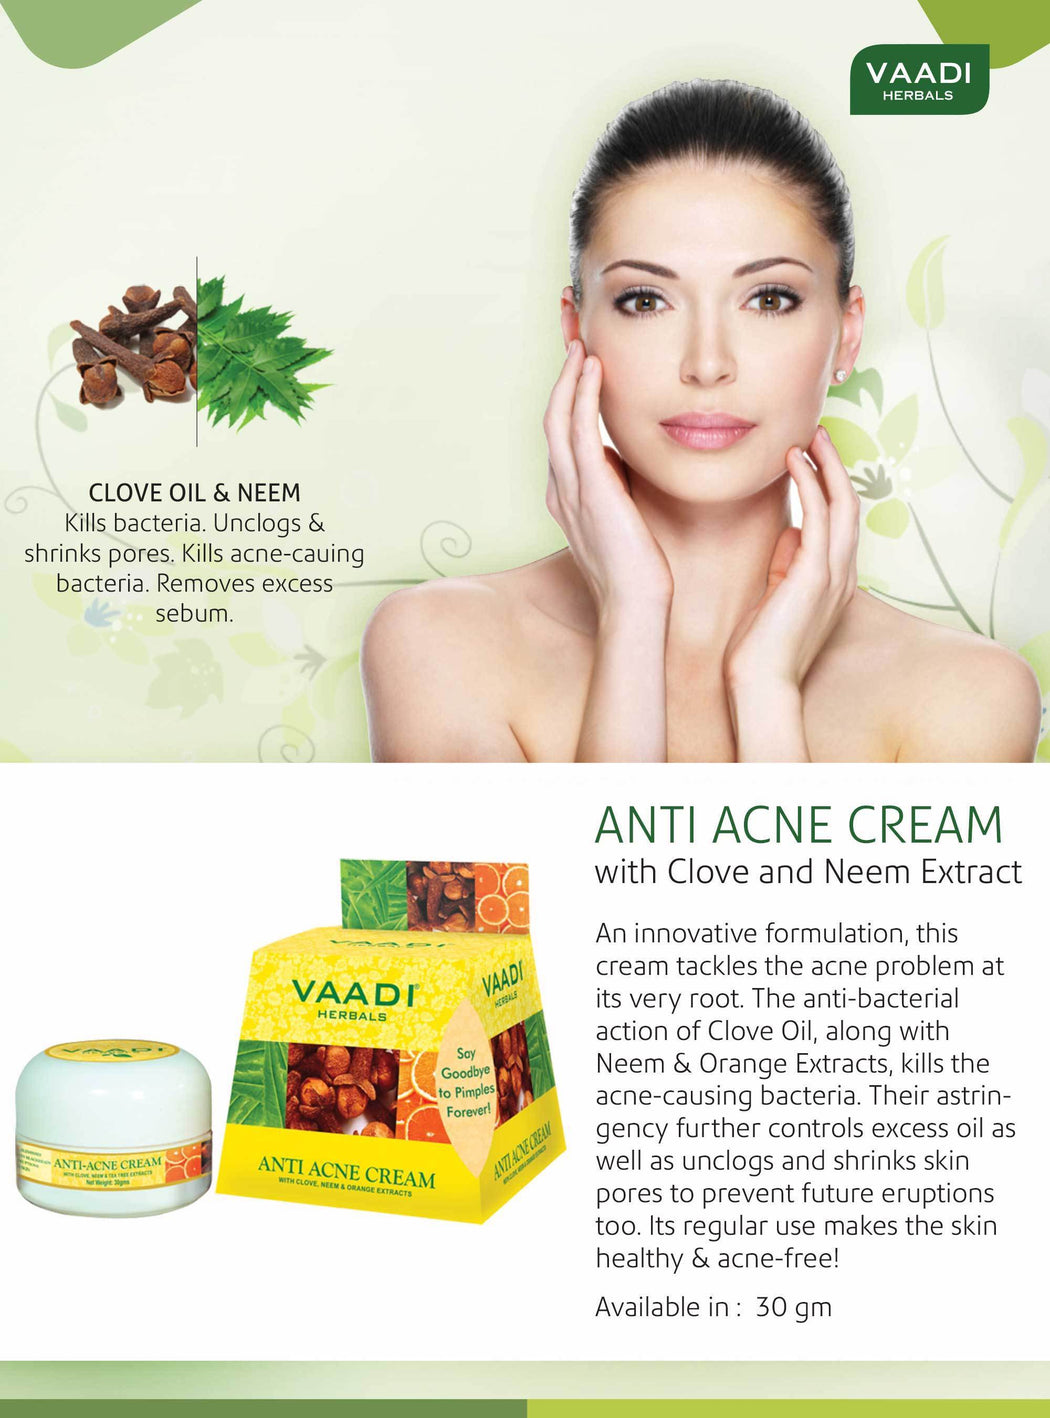 Organic Anti Acne Cream with Clove Oil & Neem Extract - Anti Bacterial Therapy - Controls Excess Oil - Prevents Acne (30 gms / 1.1 oz)